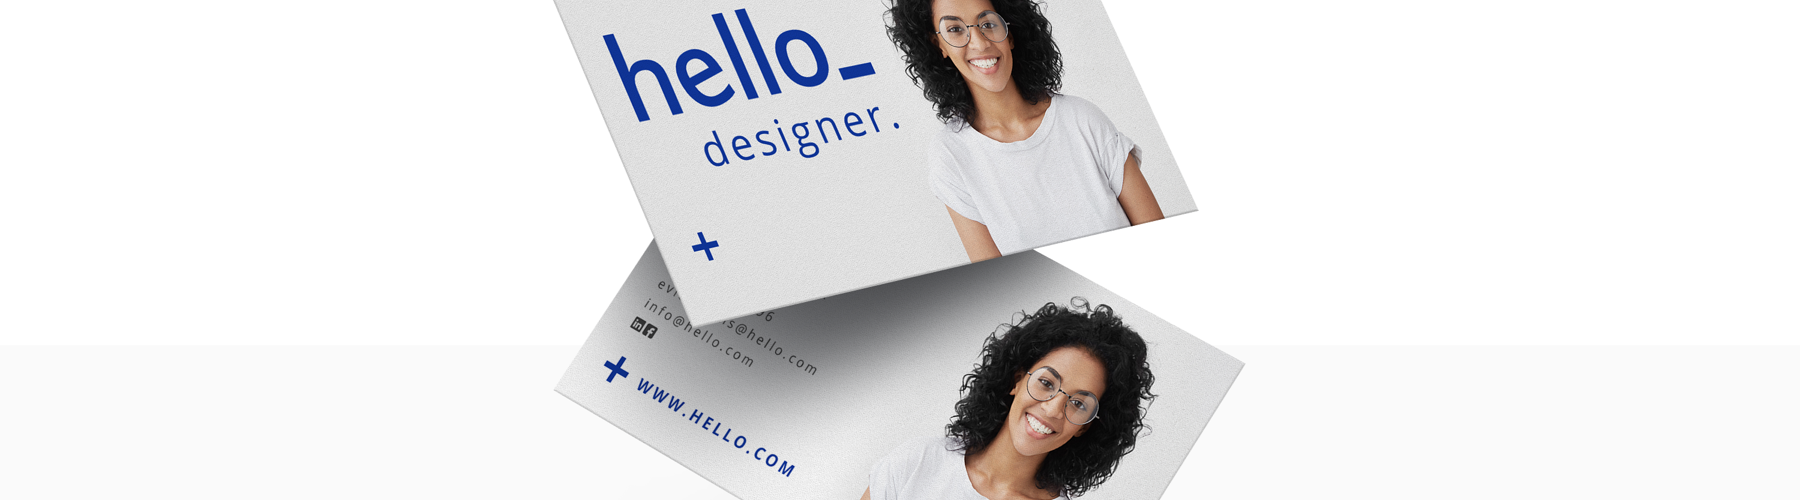 Basic Information That Should Be on Every Business Card